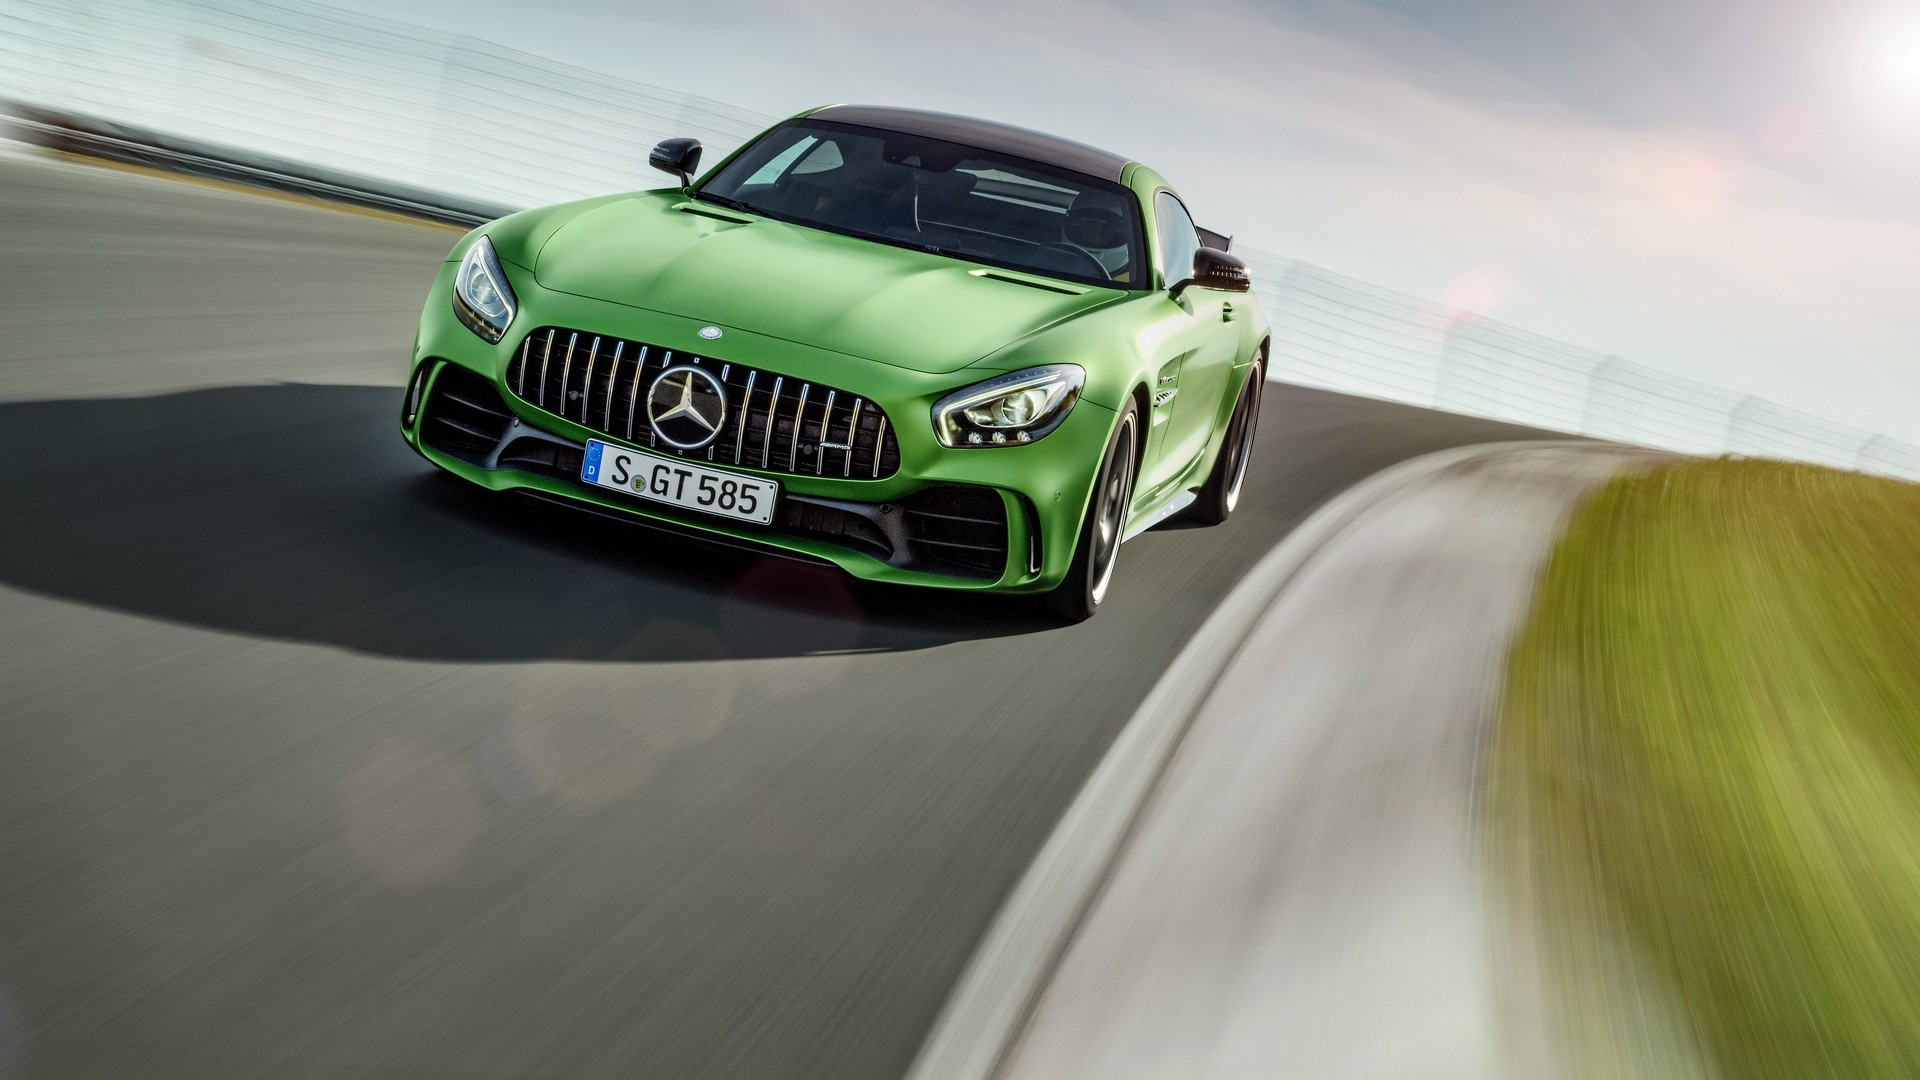 Mercedes-AMG releases a ton of GT R videos on